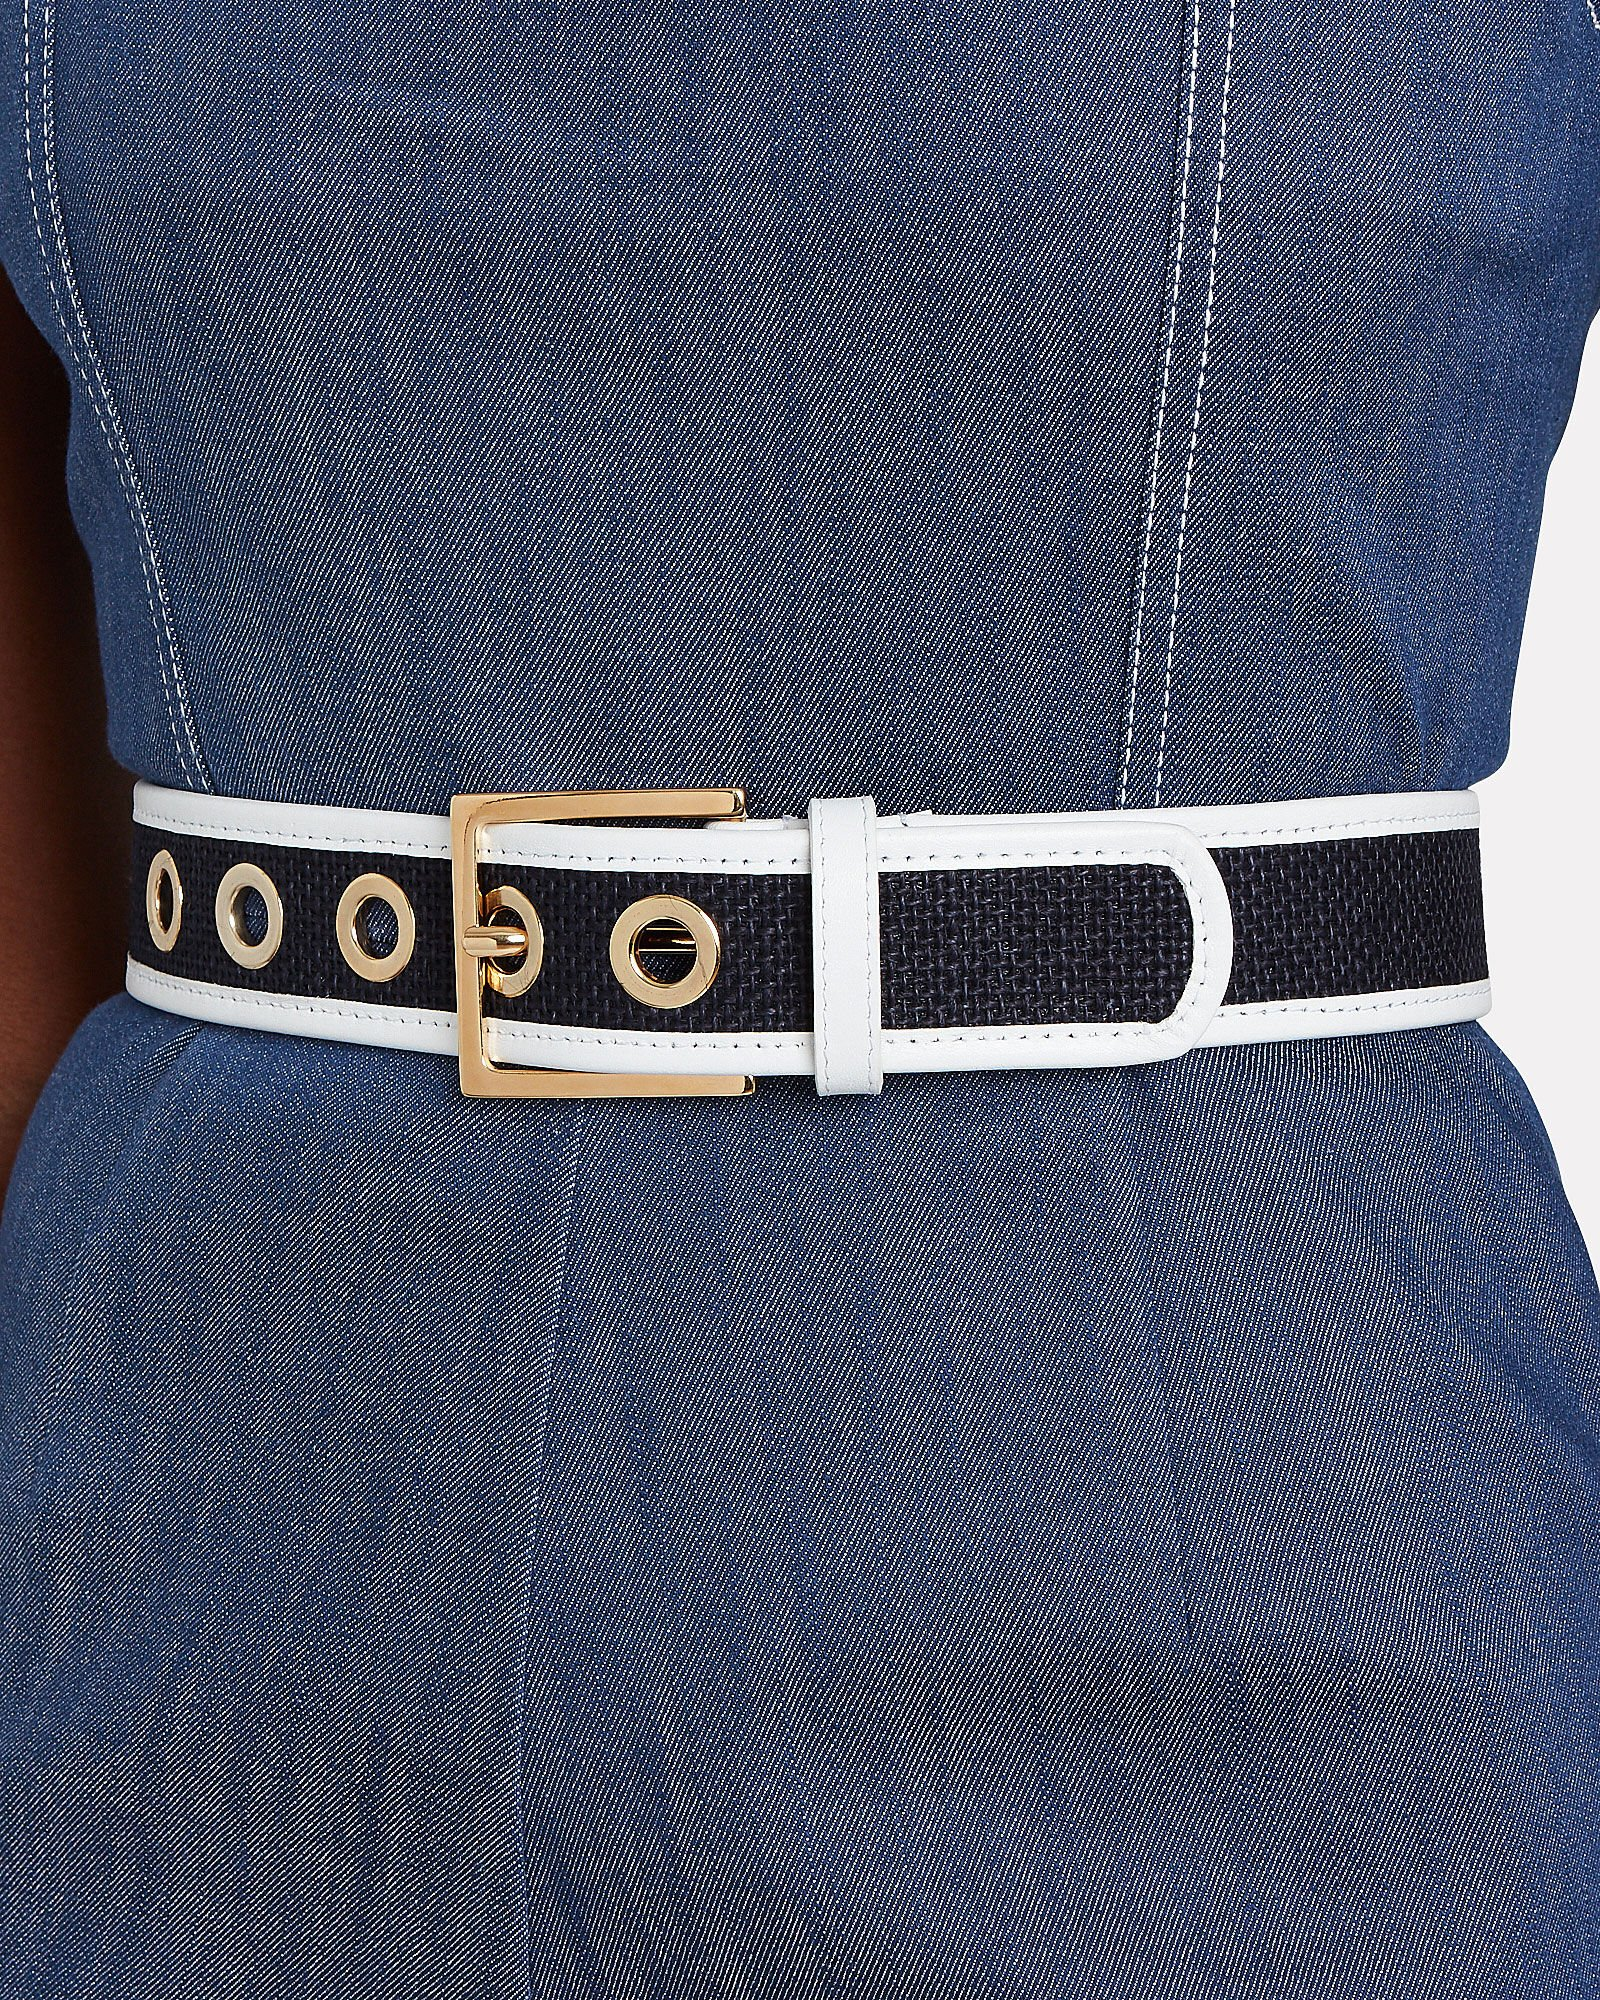 Nappa Leather-Piped Woven Belt, BLUE-DRK, hi-res